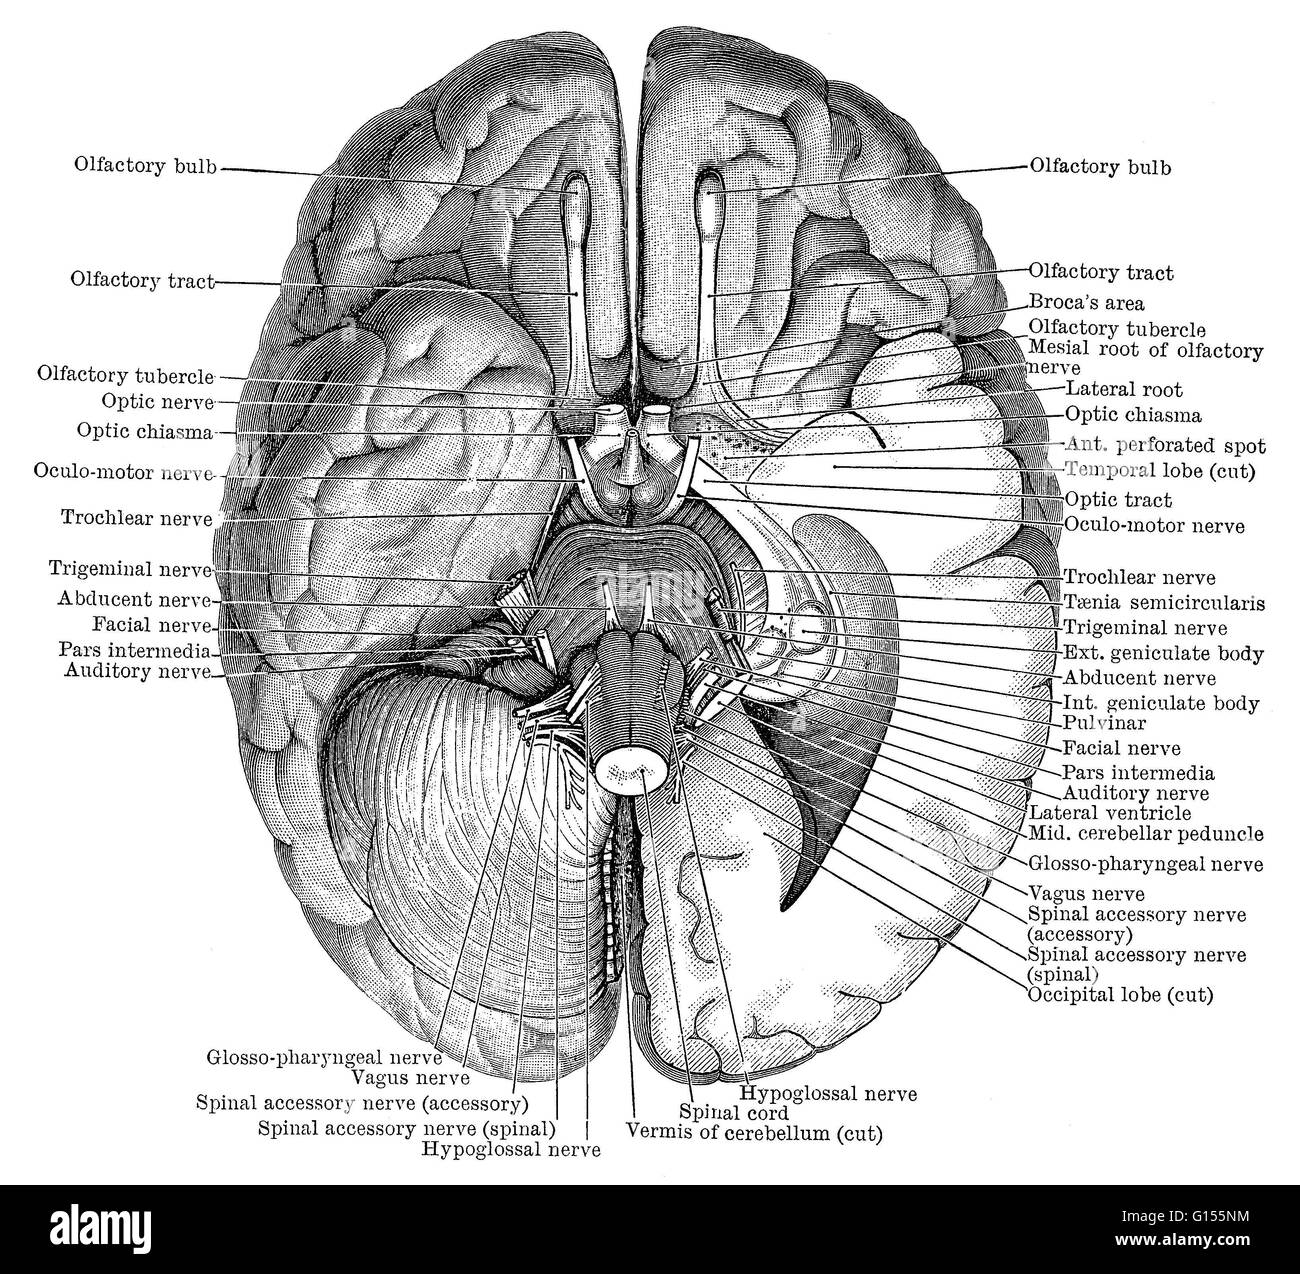 Illustration of the undersurface of the brain showing the nerves ...